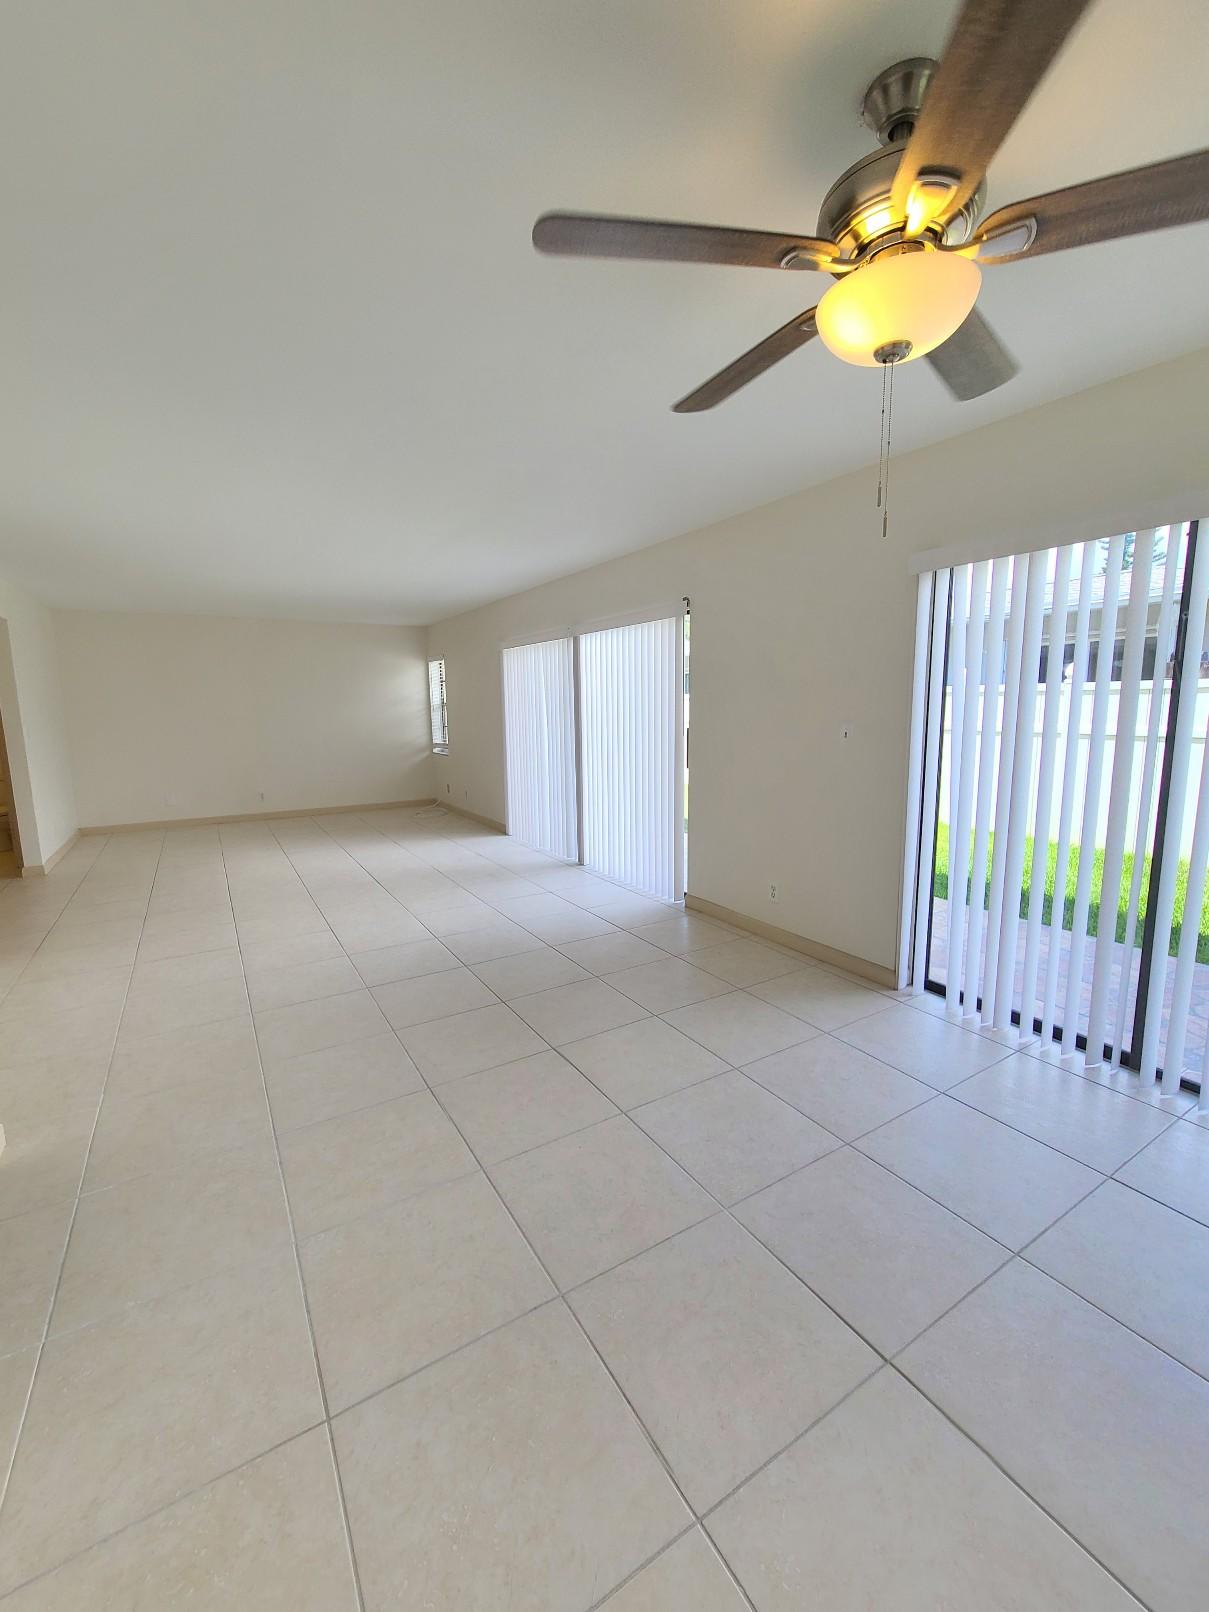 In Heart of the Fort Lauderdale Amazing two story, 2 bedroom 2.5 half bathroom Condo in Fort Lauderdale Newly updated unit with , new appliances. Bathrooms are fully renovated with modern taste. Over looking to well kept garden area. Open parking space for 2 cars. Walking distance to Fort Lauderdale Beach ,and minutes away to Lauderdale by the Sea, restaurants , bars and shopping area. Easy to show on lock box. No pets allowed.